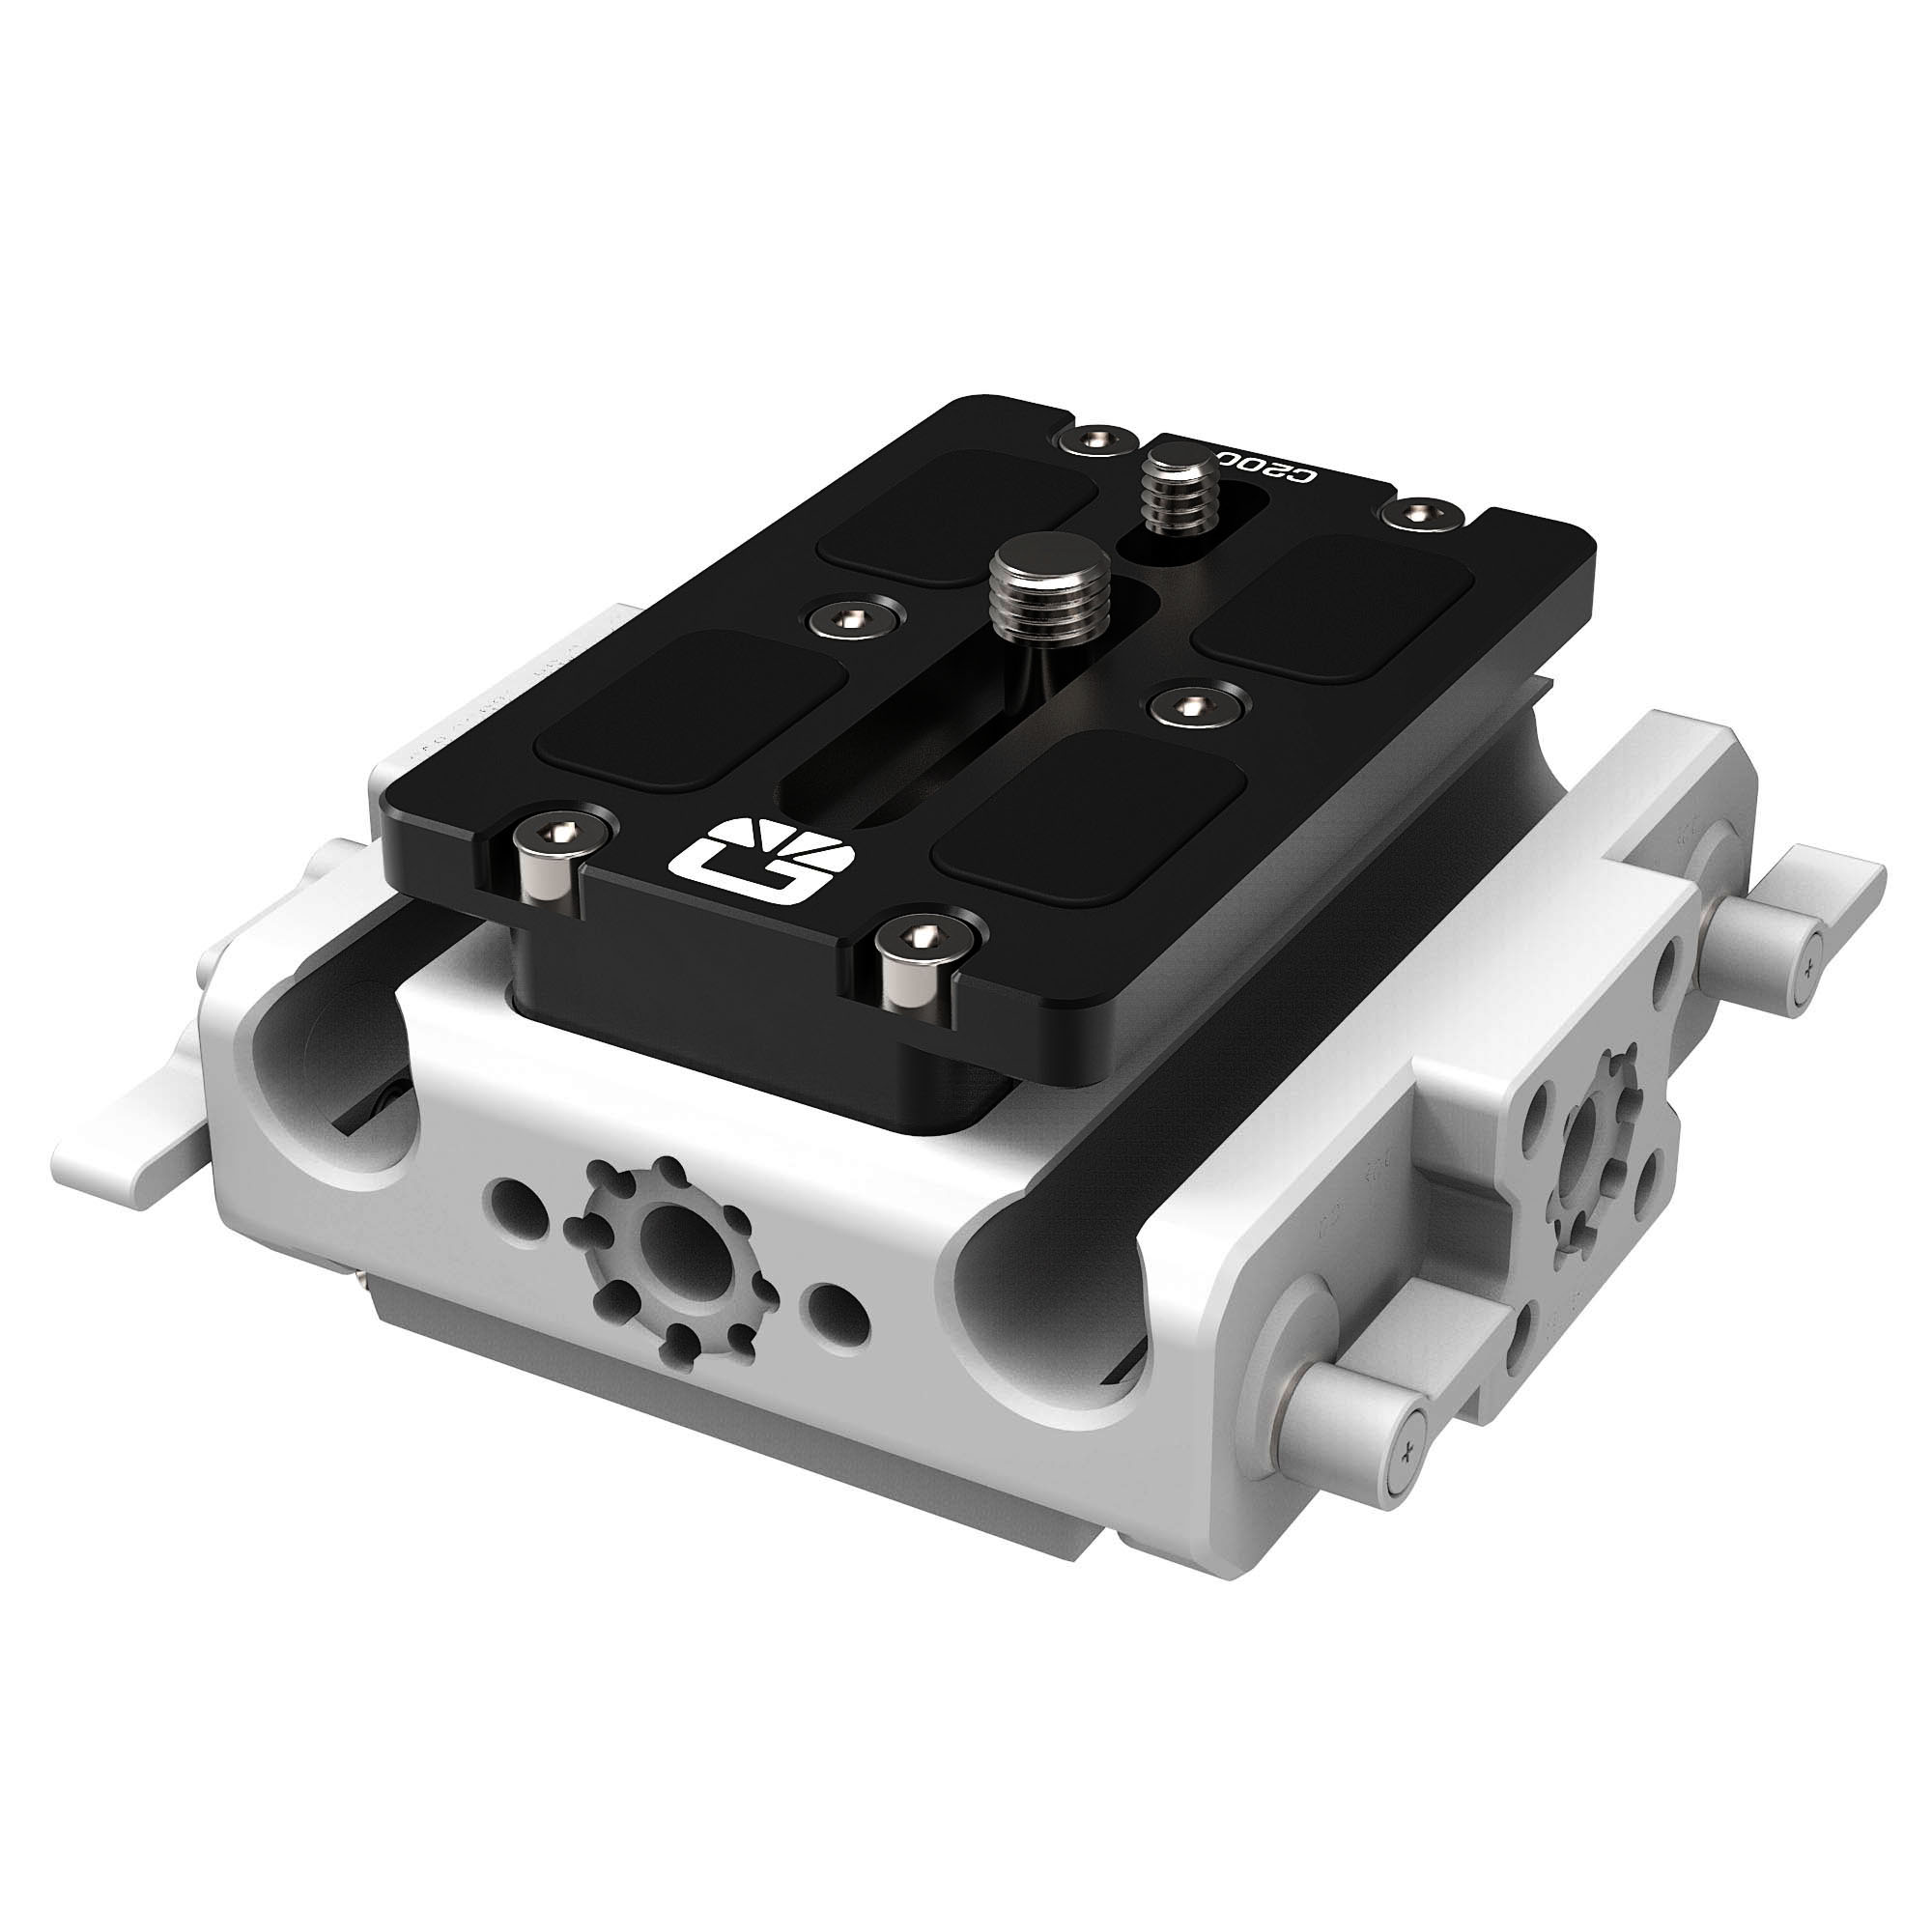 B4005 1001 Canon C200 Riser for Baseplate Core 4 1